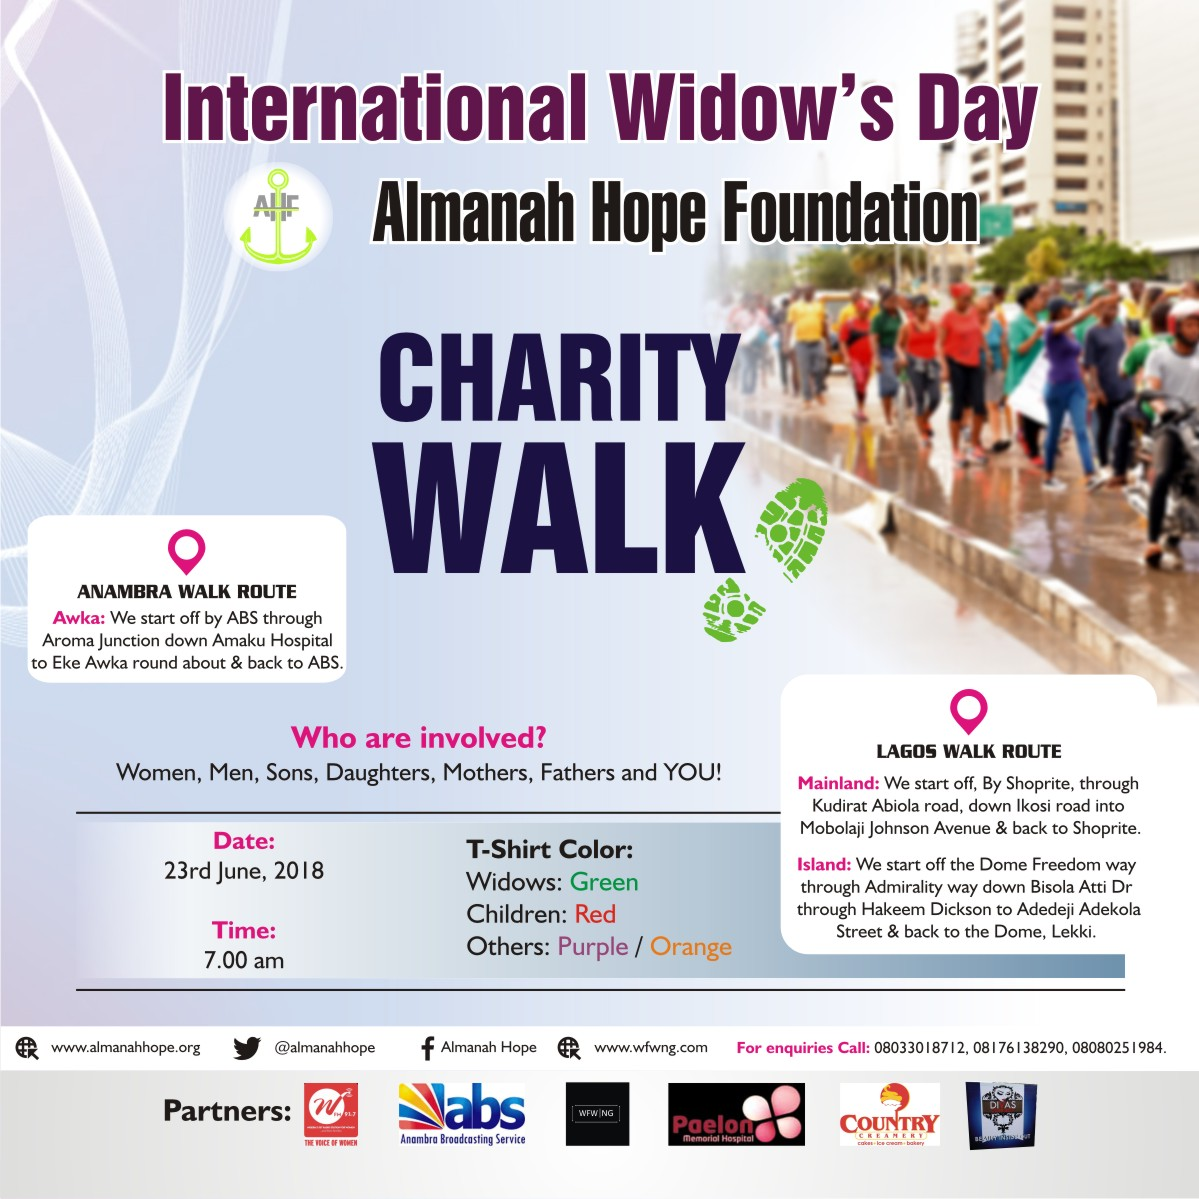 ALMANAH HOPE CHARITY WALK 2018 (SEASON 2) DATED: 23RD JUNE 2018 VENUE: LAGOS STATE (MAINLAND& ISLAND) AND ANAMBRA STATE (AWAKA)